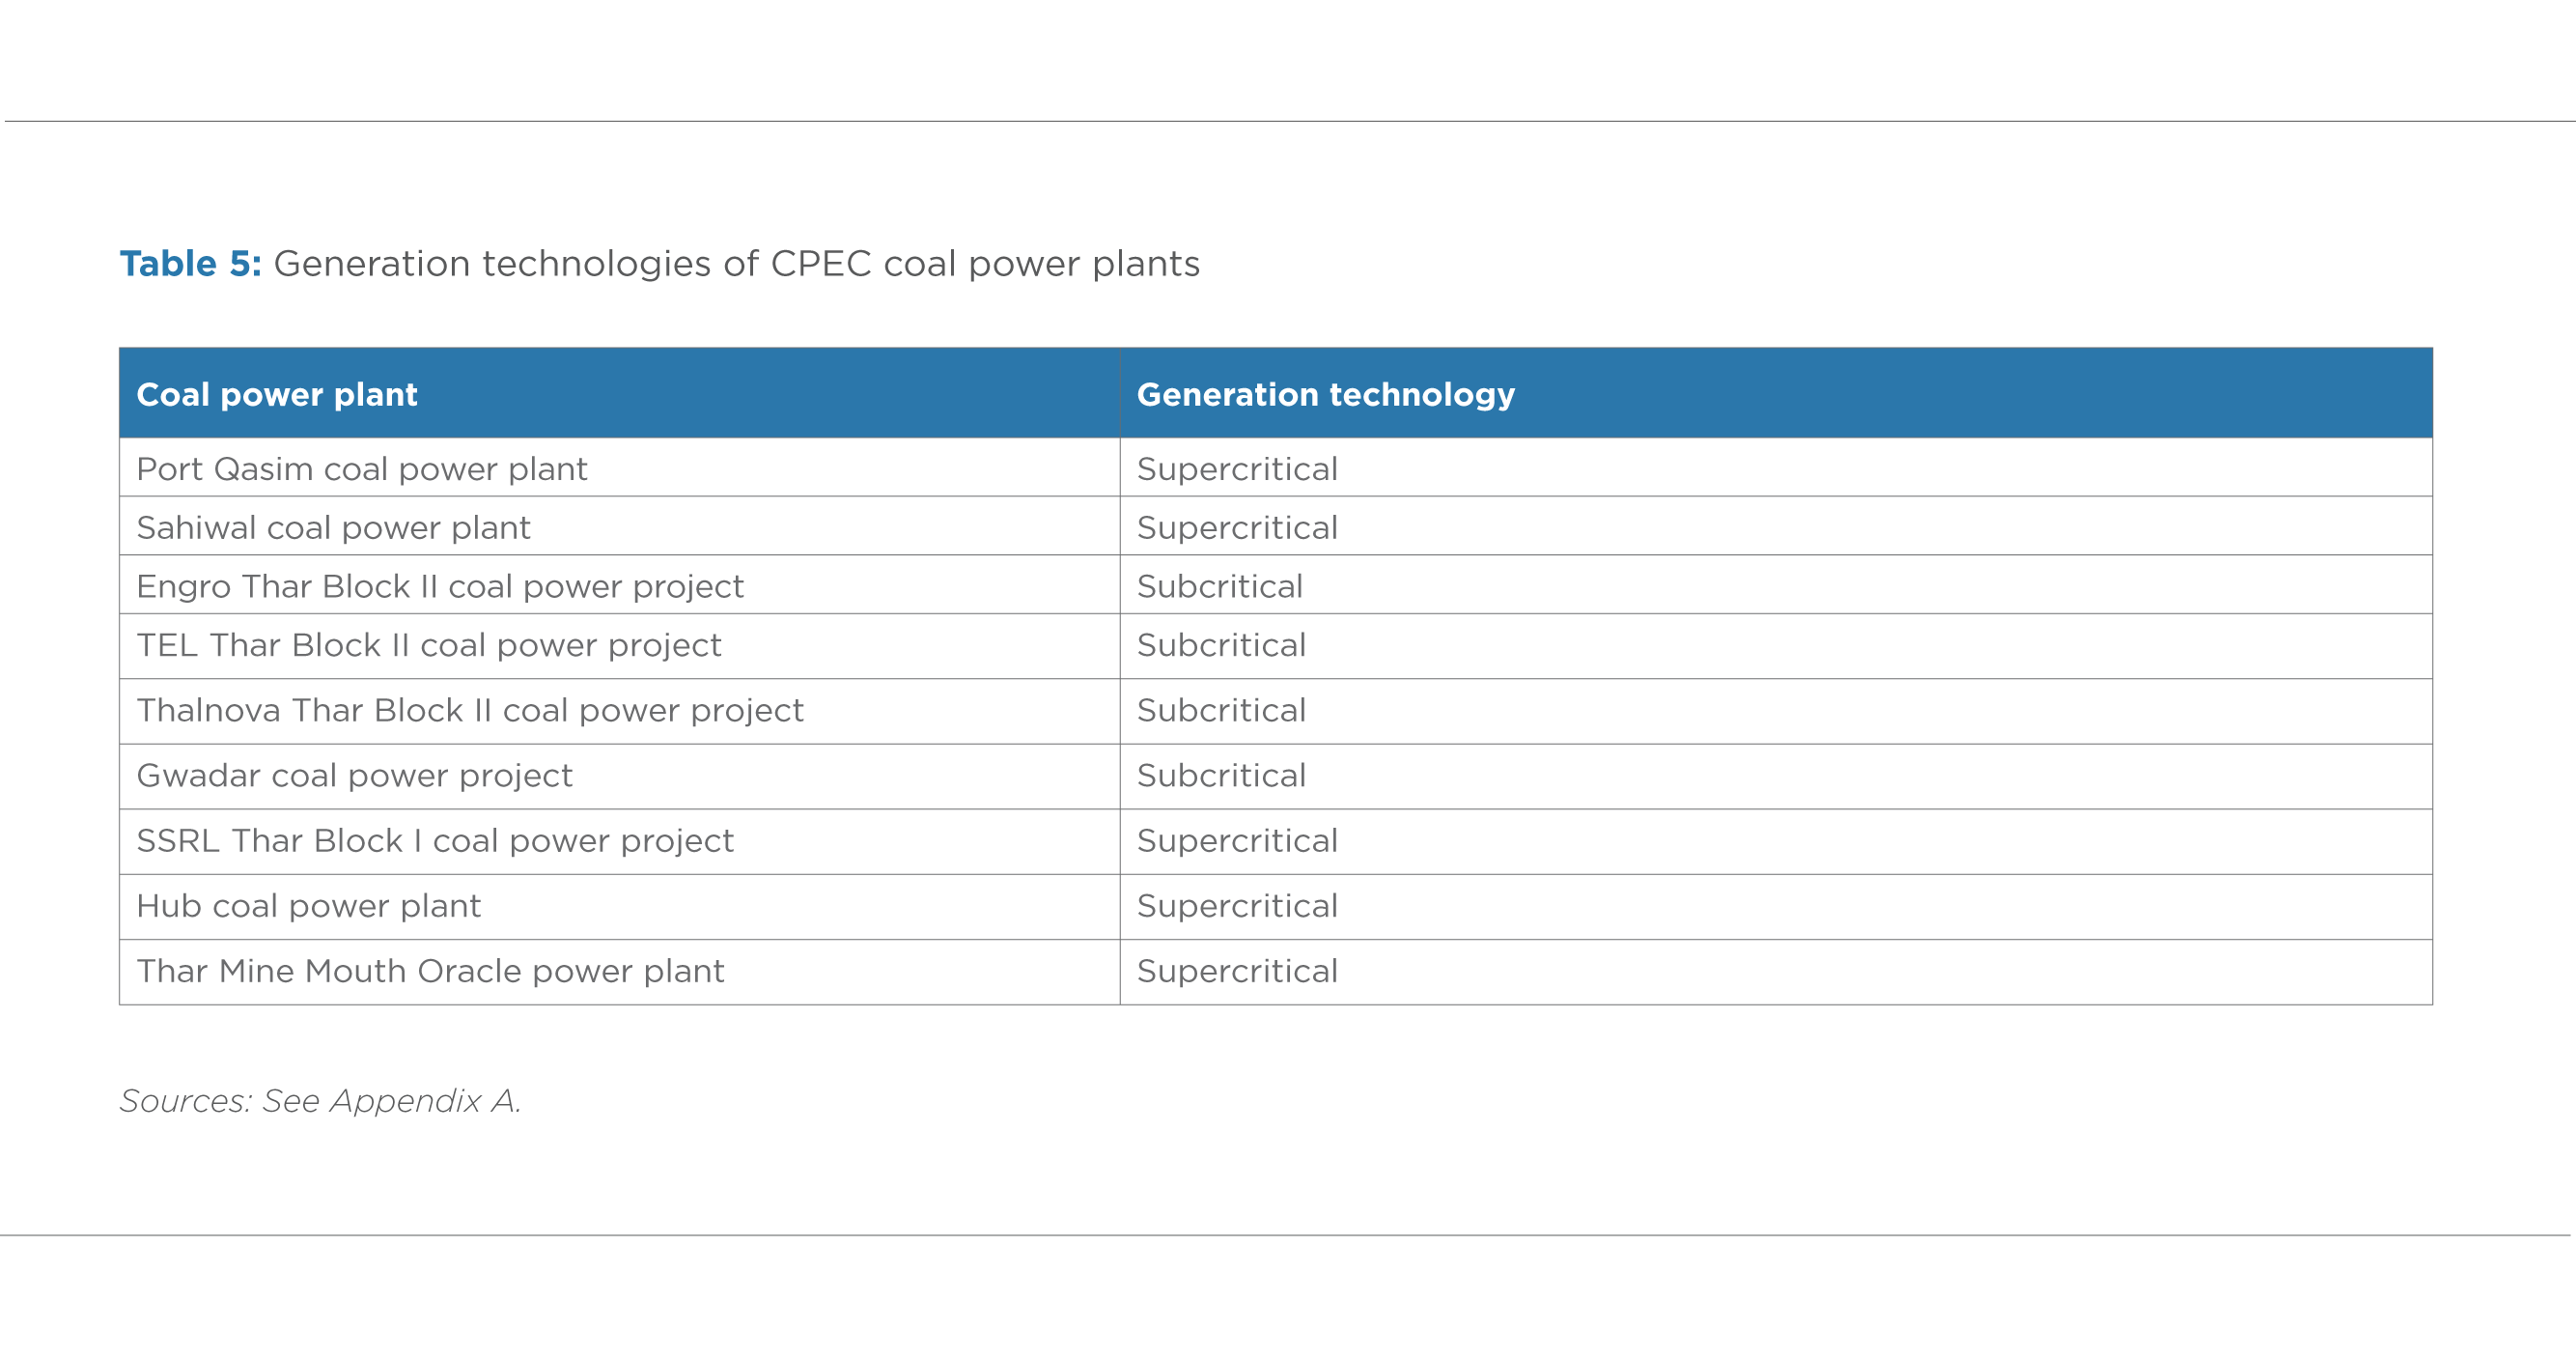 TABLE 5. GENERATION TECHNOLOGIES OF CPEC COAL POWER PLANTS